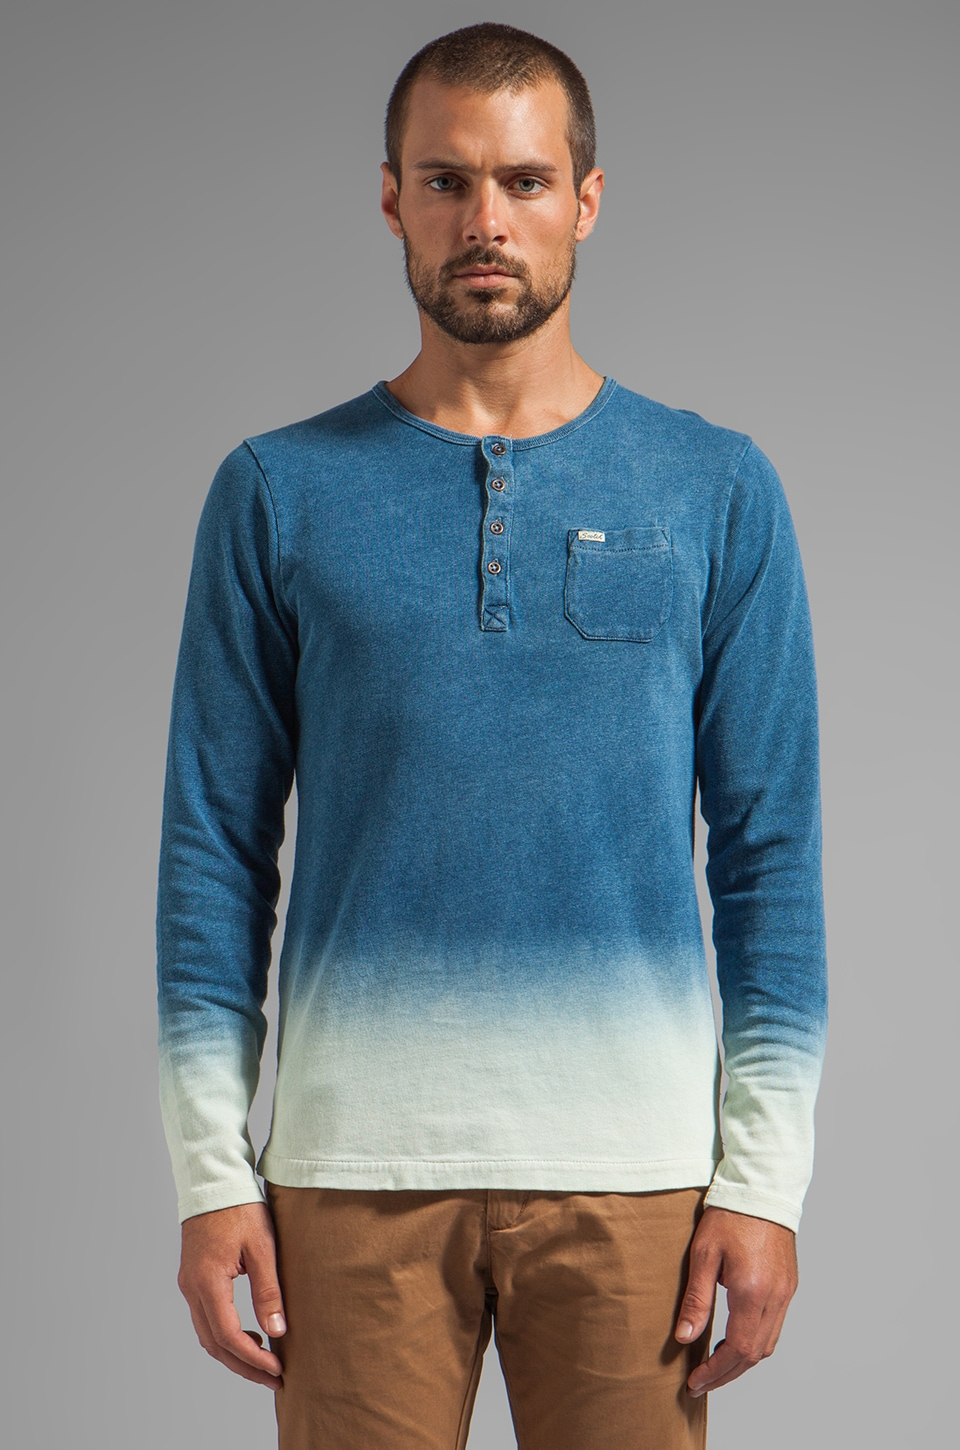 Scotch & Soda Granddad Dip Dye in Indigo